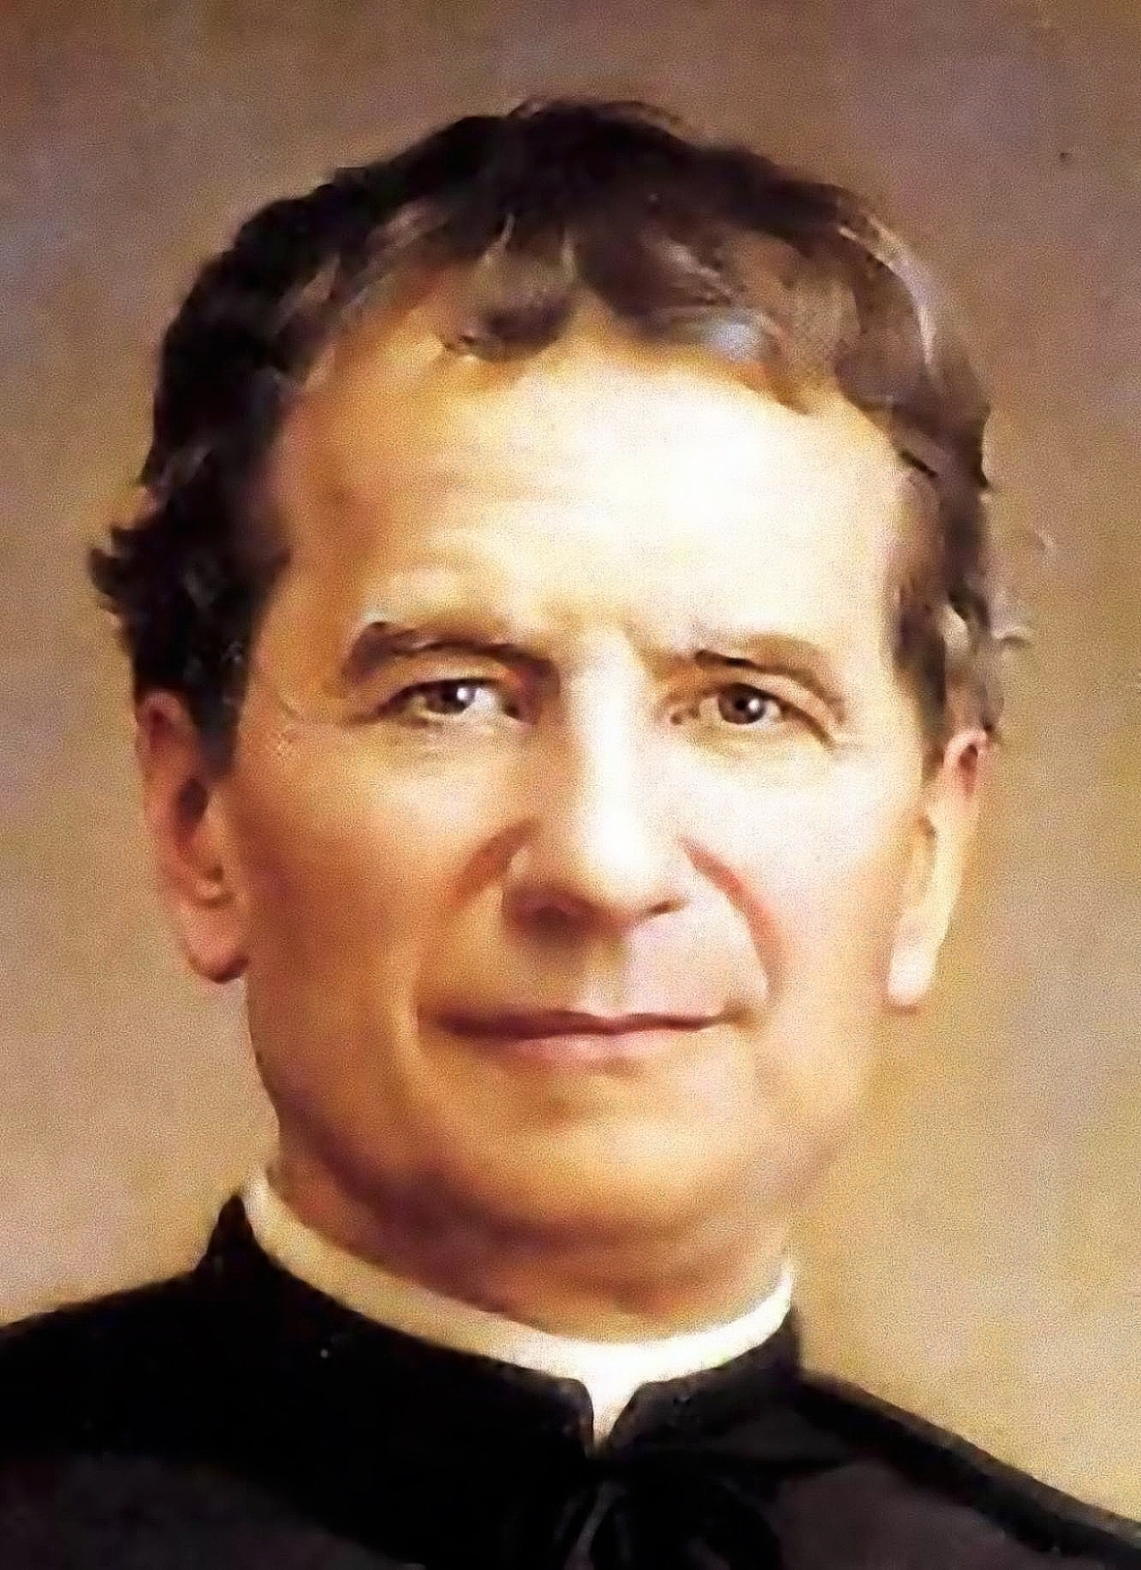 Une image de Don Bosco